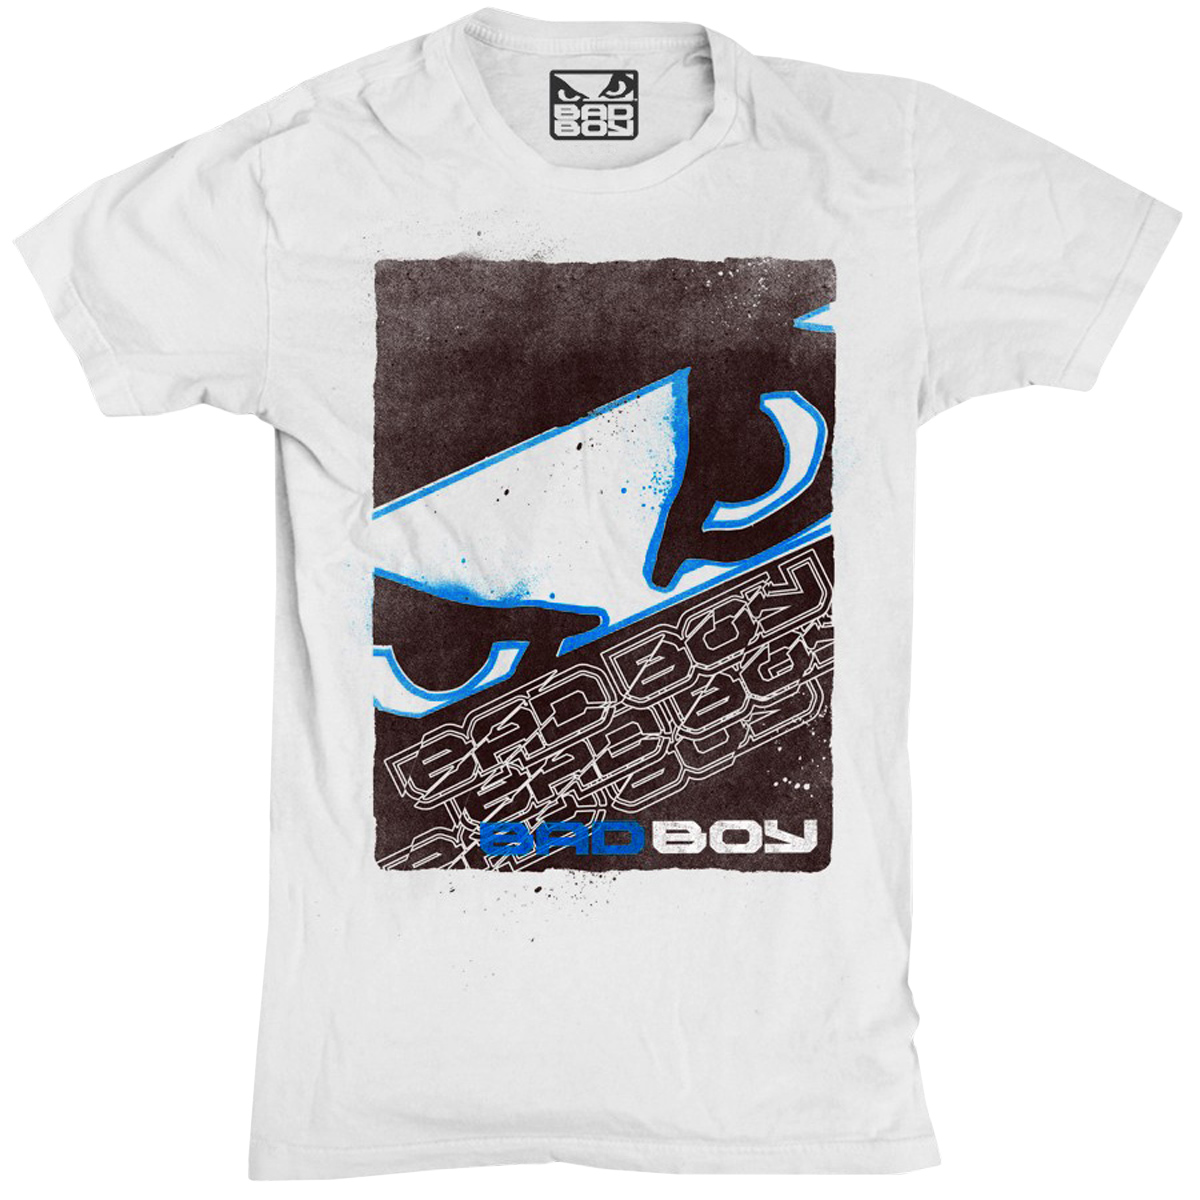 Bad Boy Youth Face Puncher T-Shirt - White